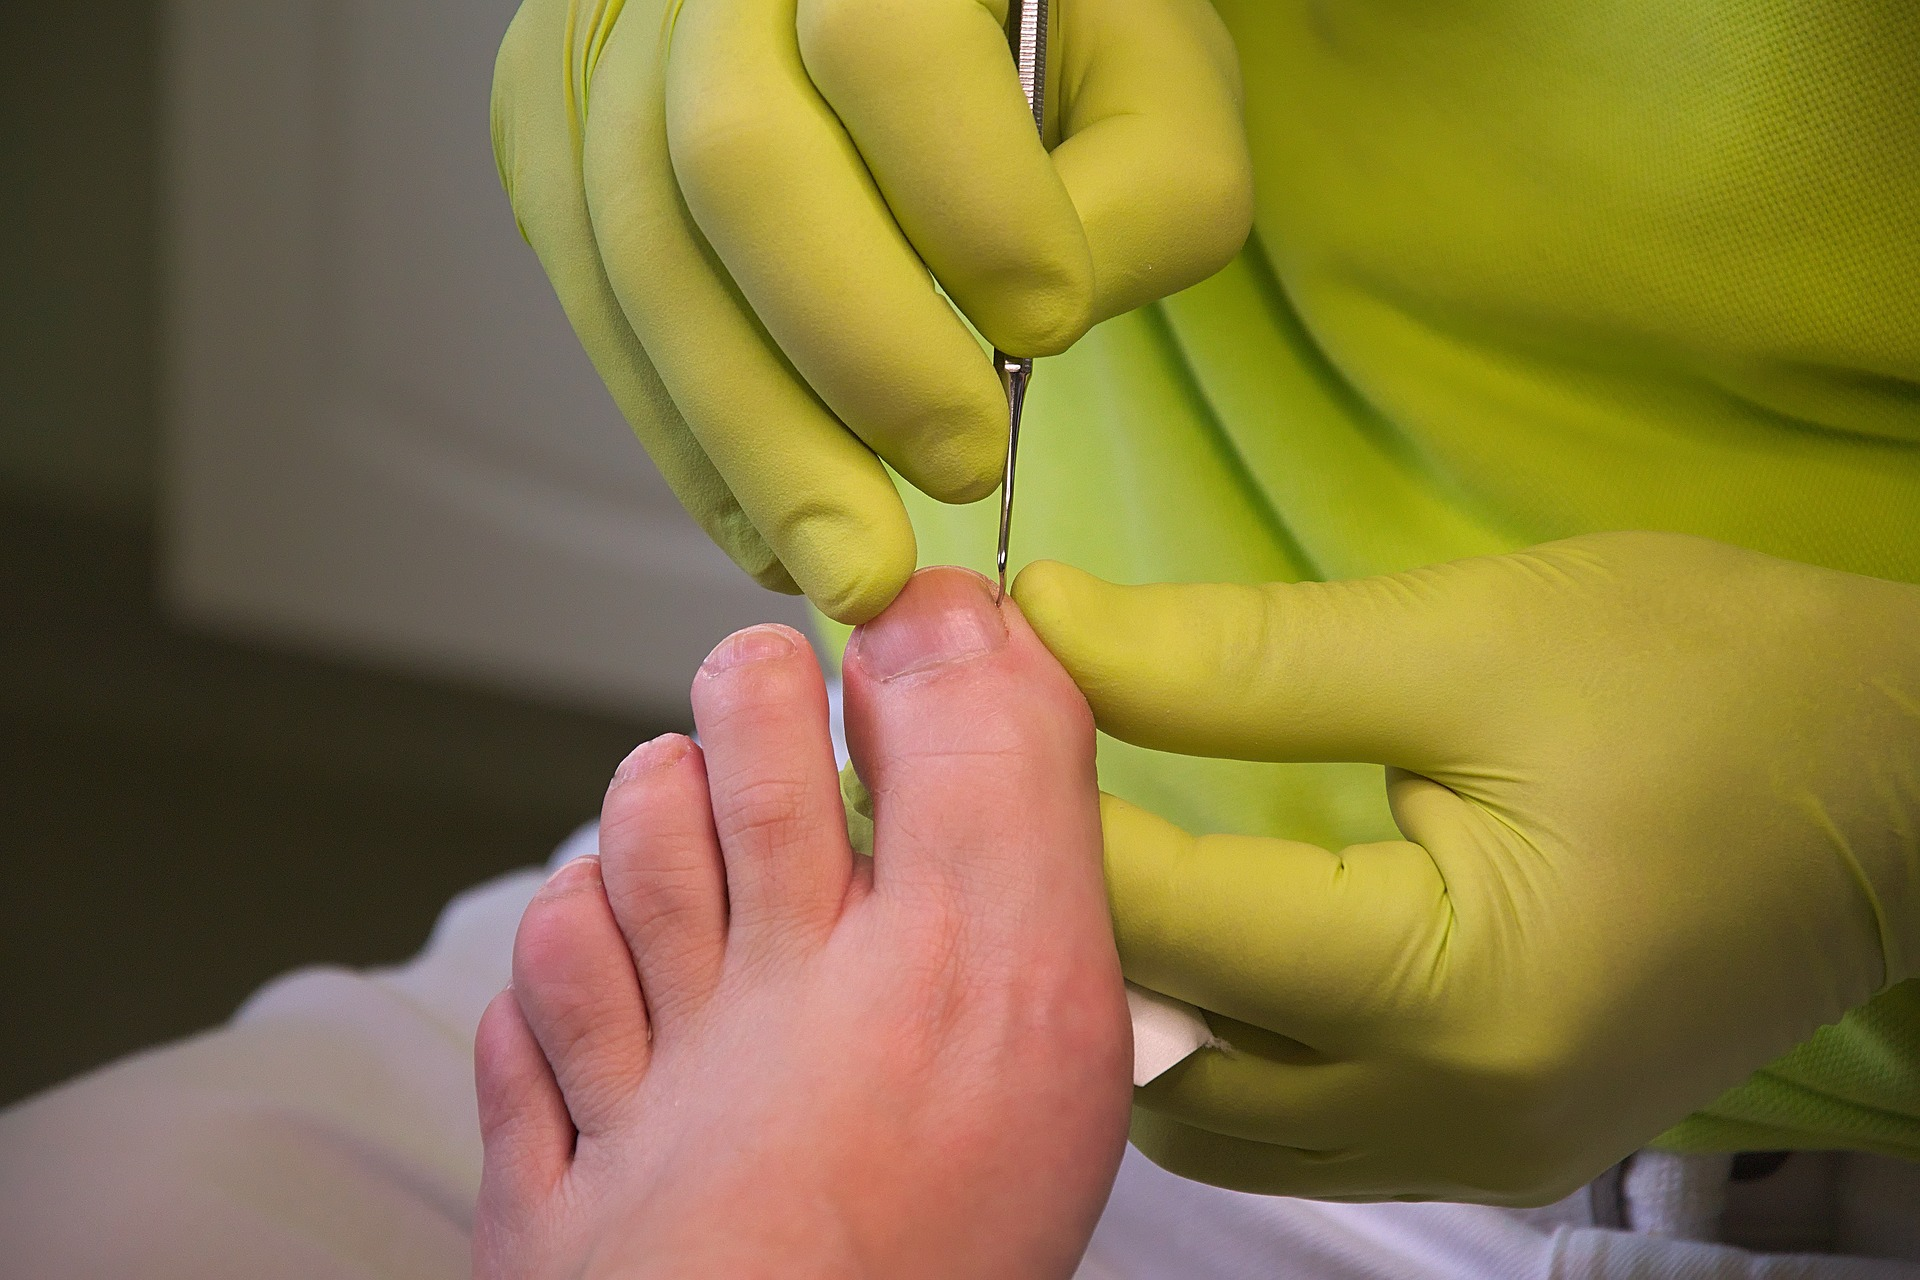 foot-care-3557103_1920